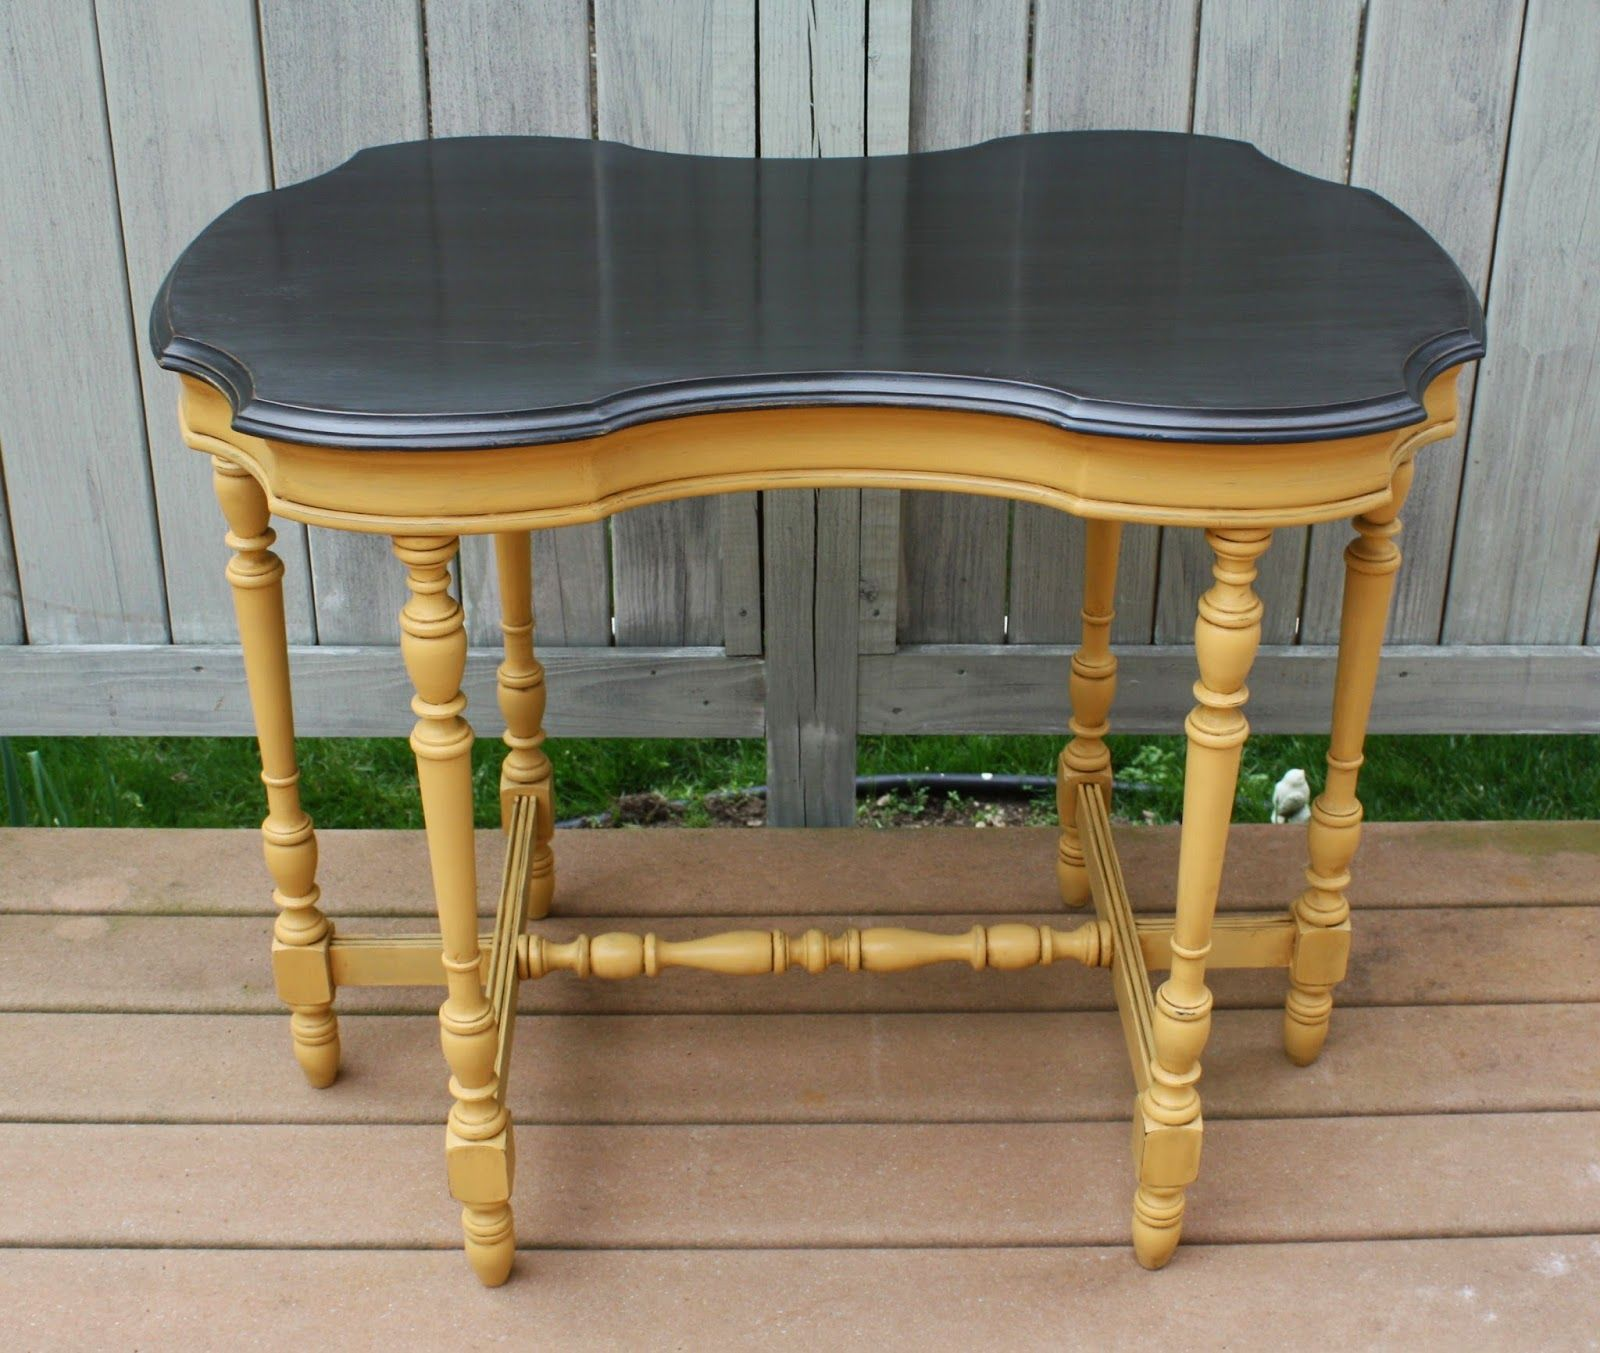 The Black Sheep Shoppe: Vintage Occasional Table